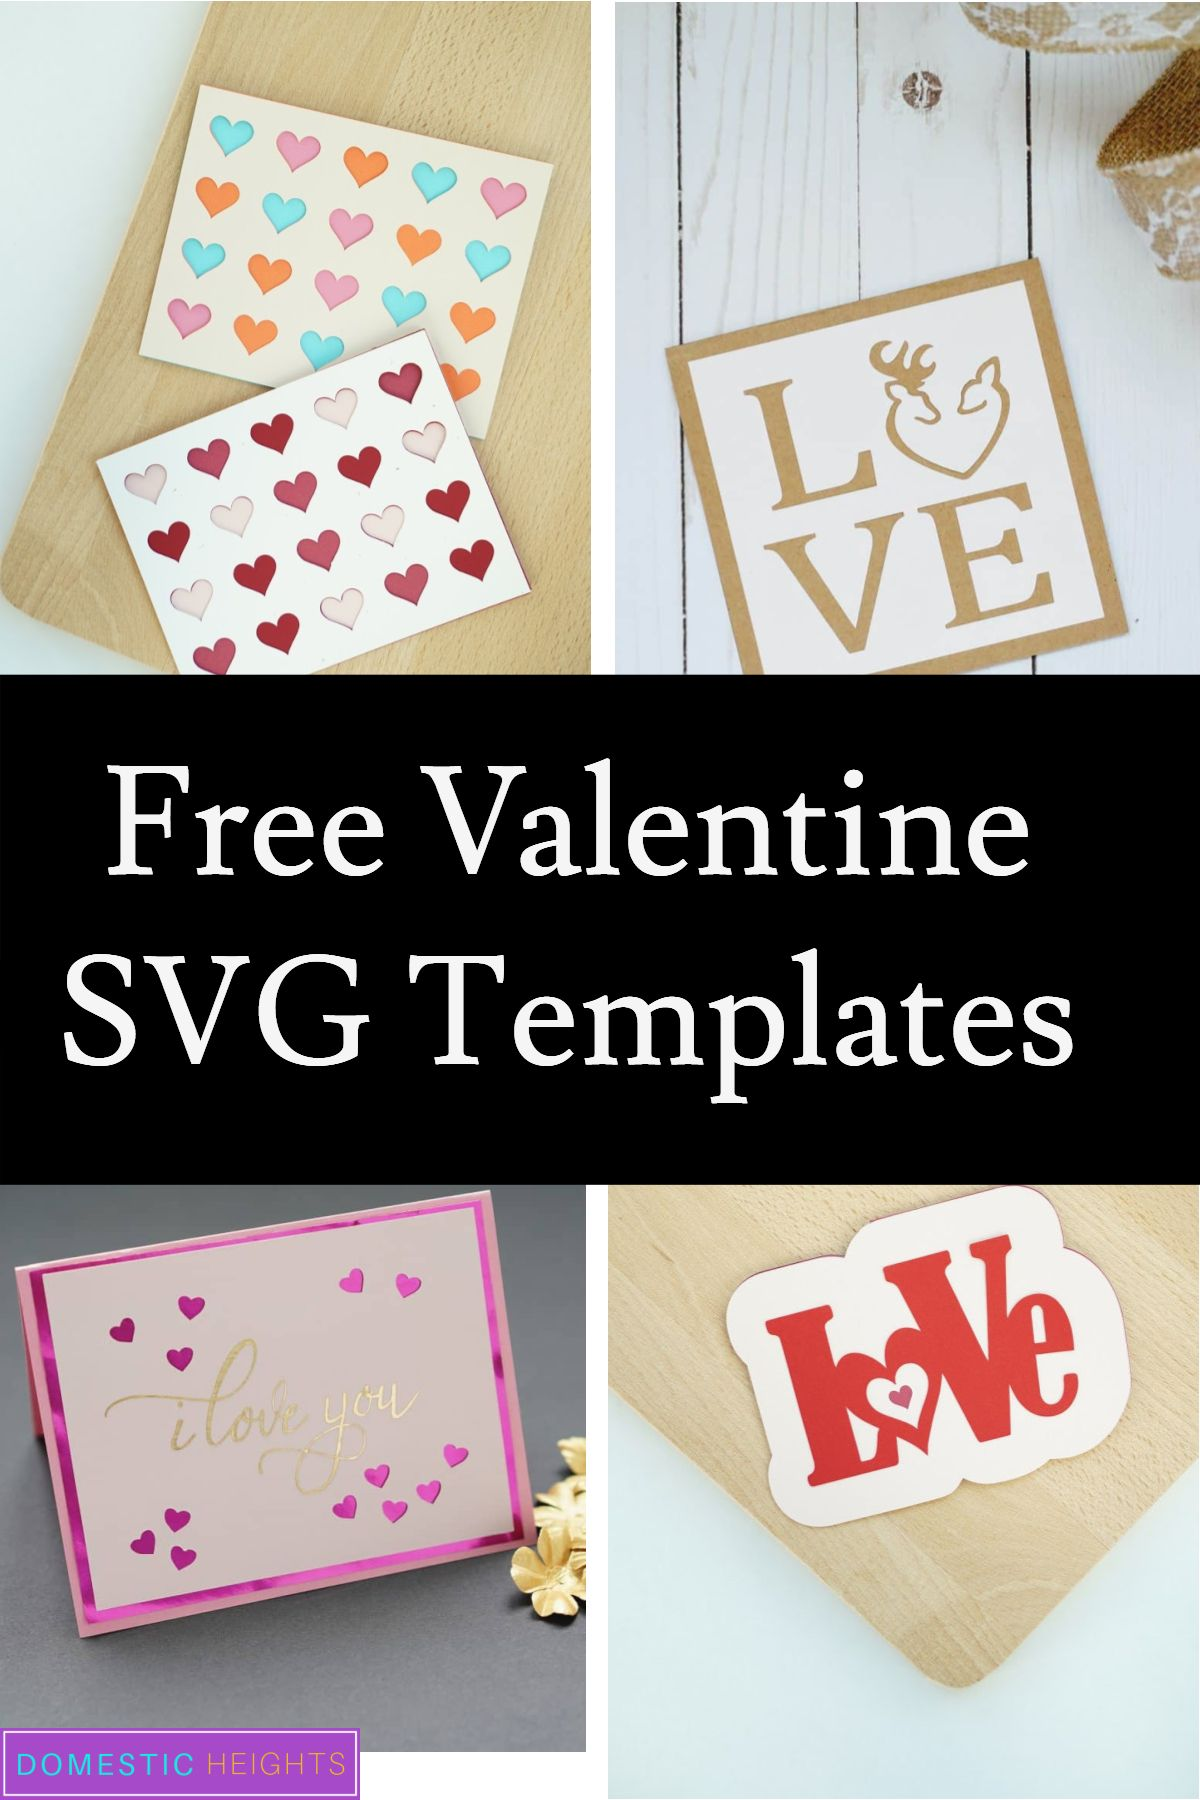 Love Card Ideas With Free Templates Domestic Heights Valentine Card Template Love Cards Handmade Free Valentine